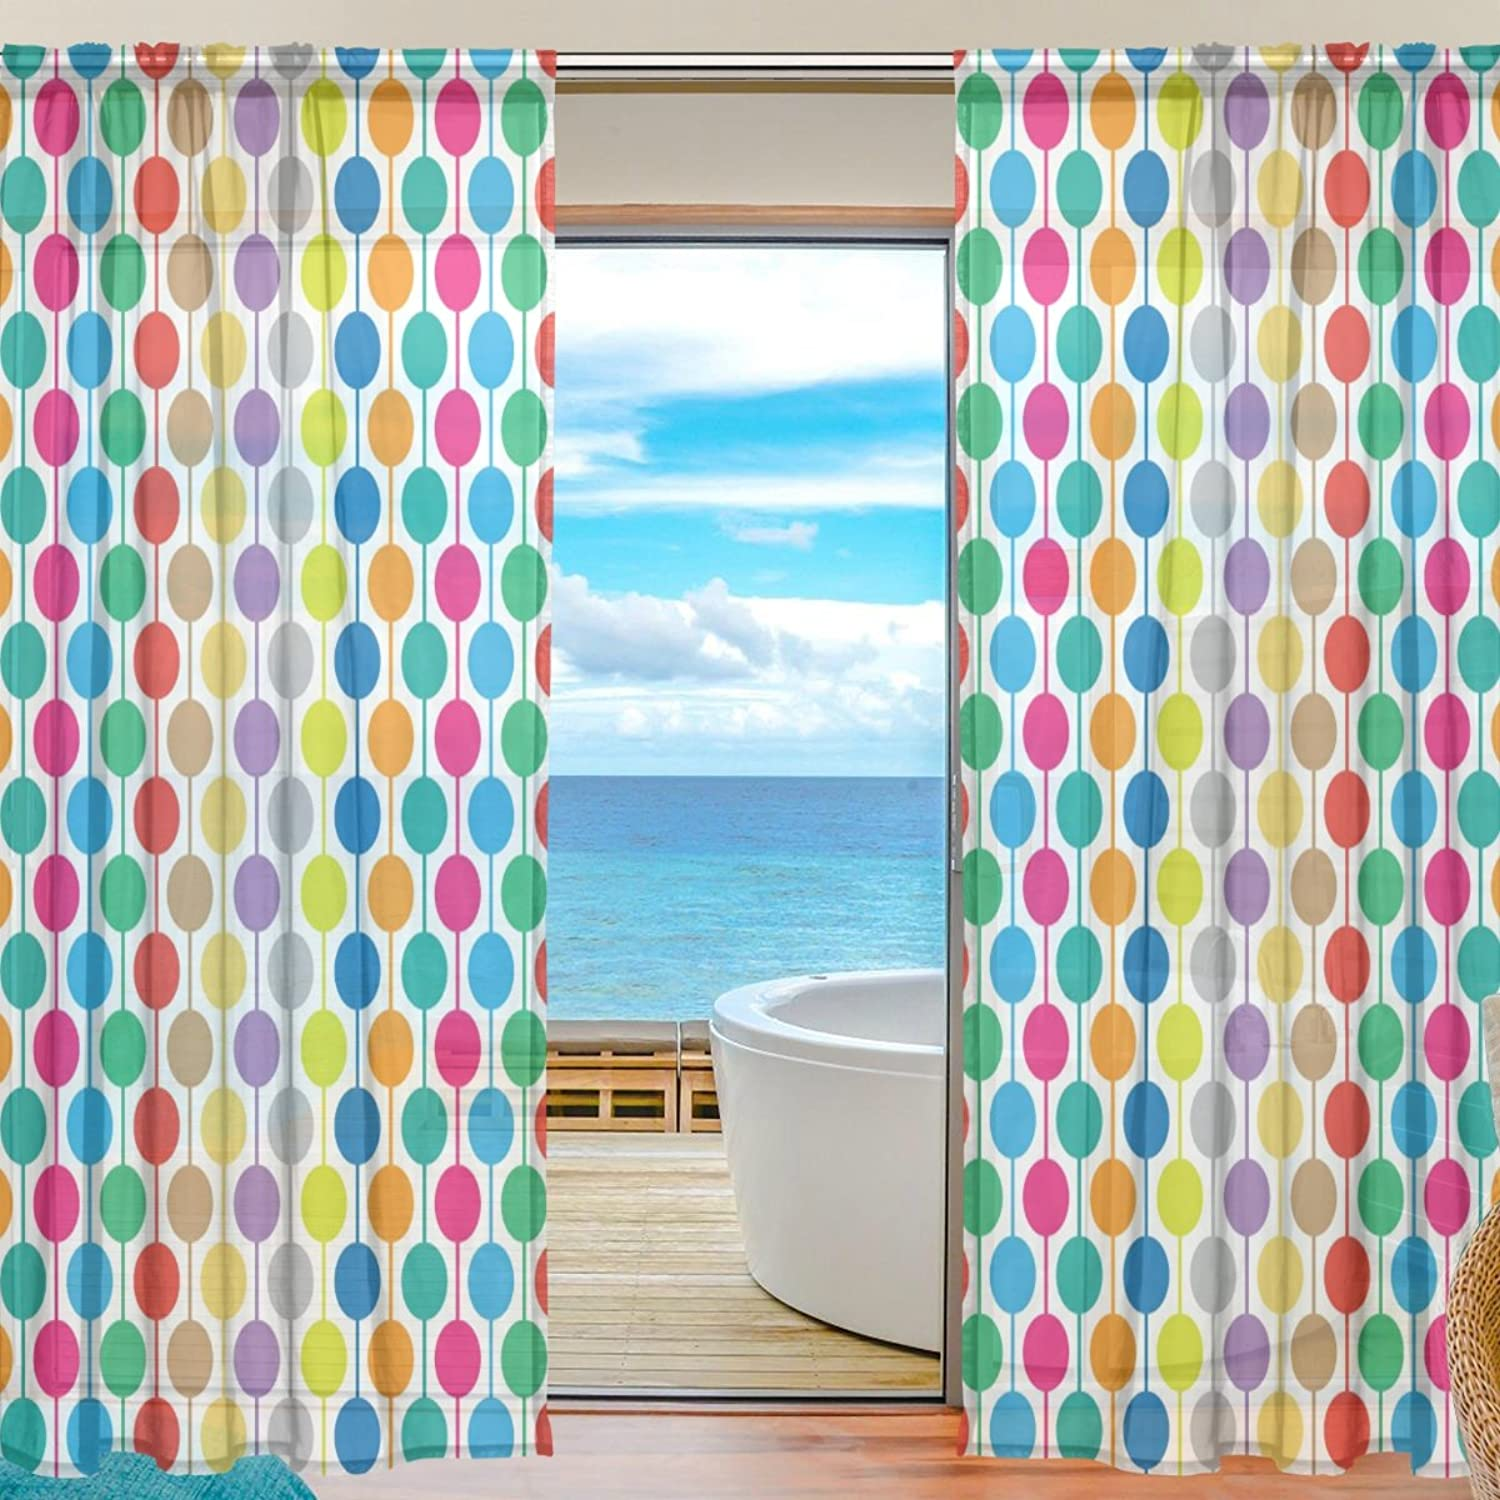 Vantaso Sheer Curtains 78 inch Long Vector colorful Dots Background for Kids Girls Bedroom Living Room Window Decorative 2 Panels